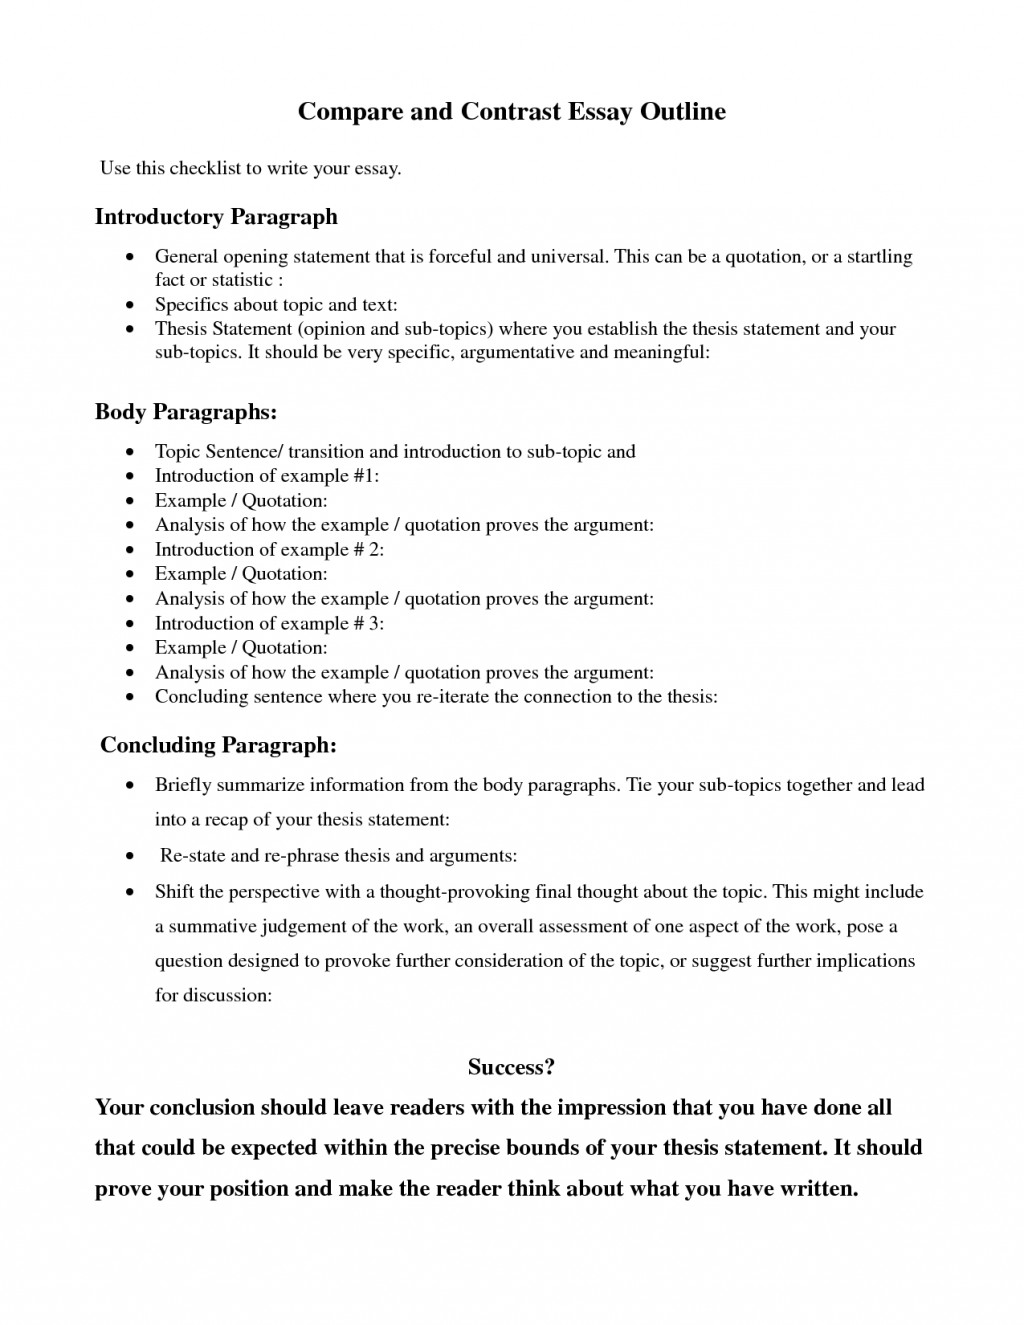 009 Essay Example How To Conclude Compare And Fantastic A Contrast Start Writing Comparison Write Begin Large